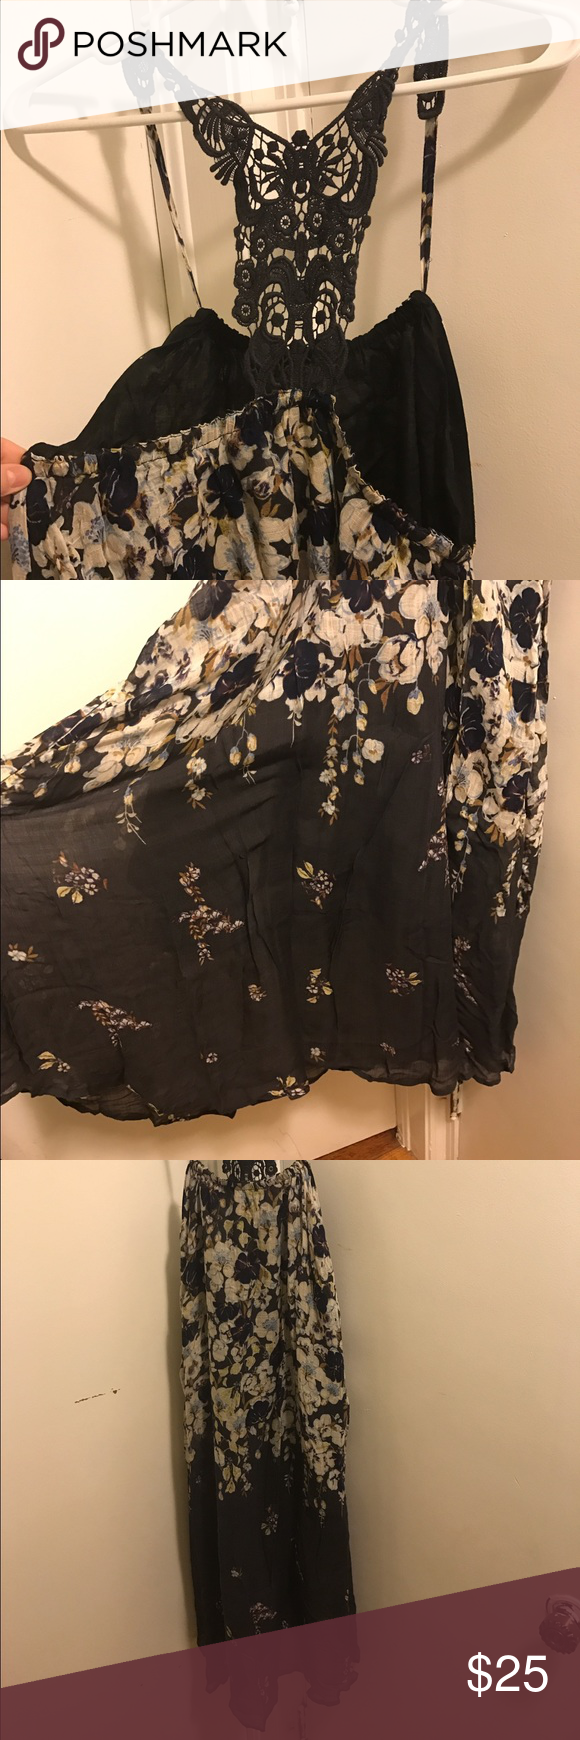 Anthropologie Dress Flowy navy blue with floral dress. Lace detail on the back. Lined. Lilka brand from Anthro. 100% rayon, hand wash cold. Super cute, never worn... took the tags off though. This would easily fit a size large too! Anthropologie Dresses Midi